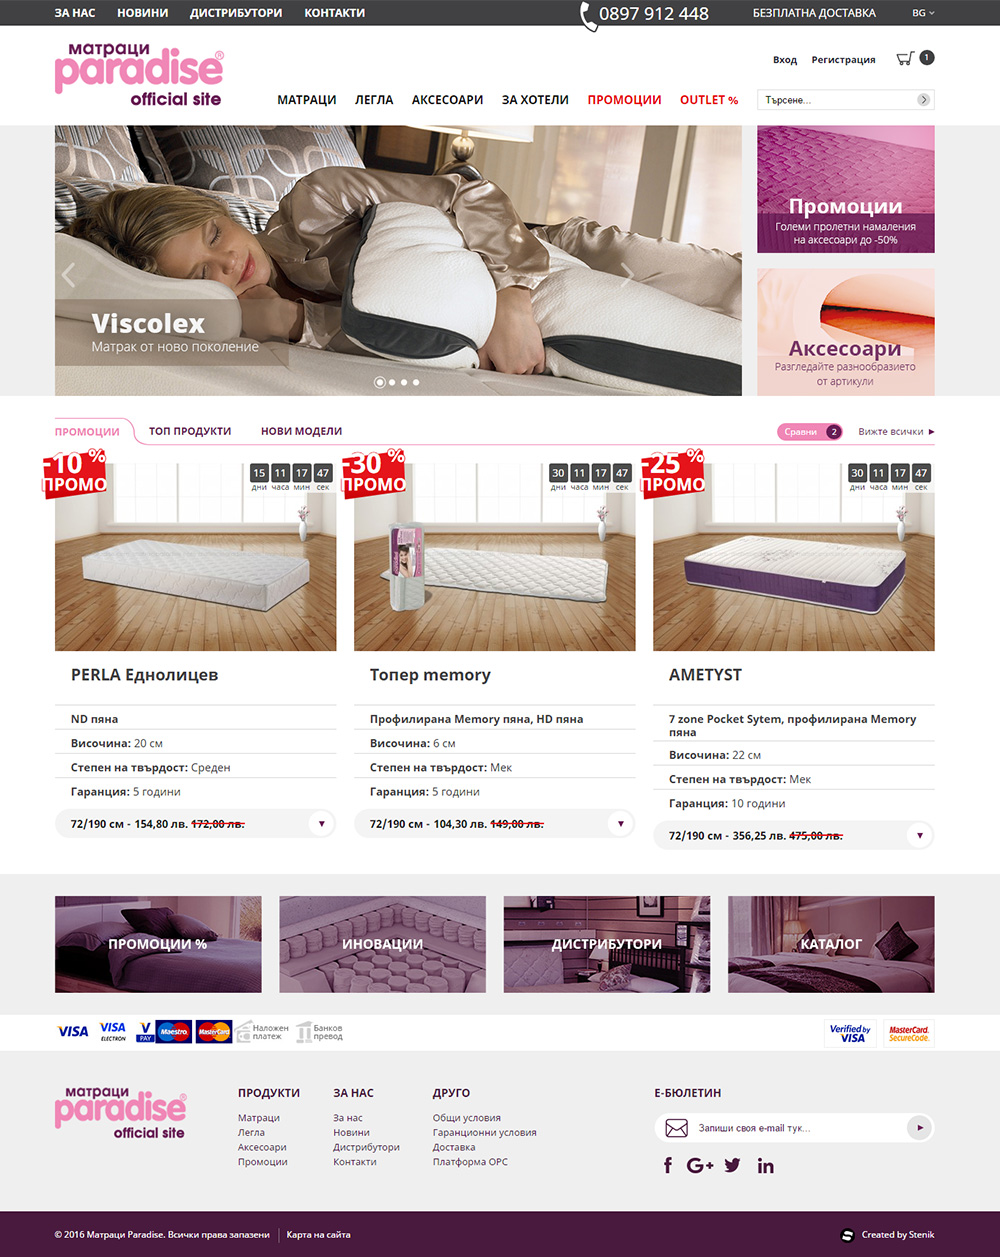 Online store for Matraci Paradise, Matraci Paradise - Online Shops, Stenik, Magento